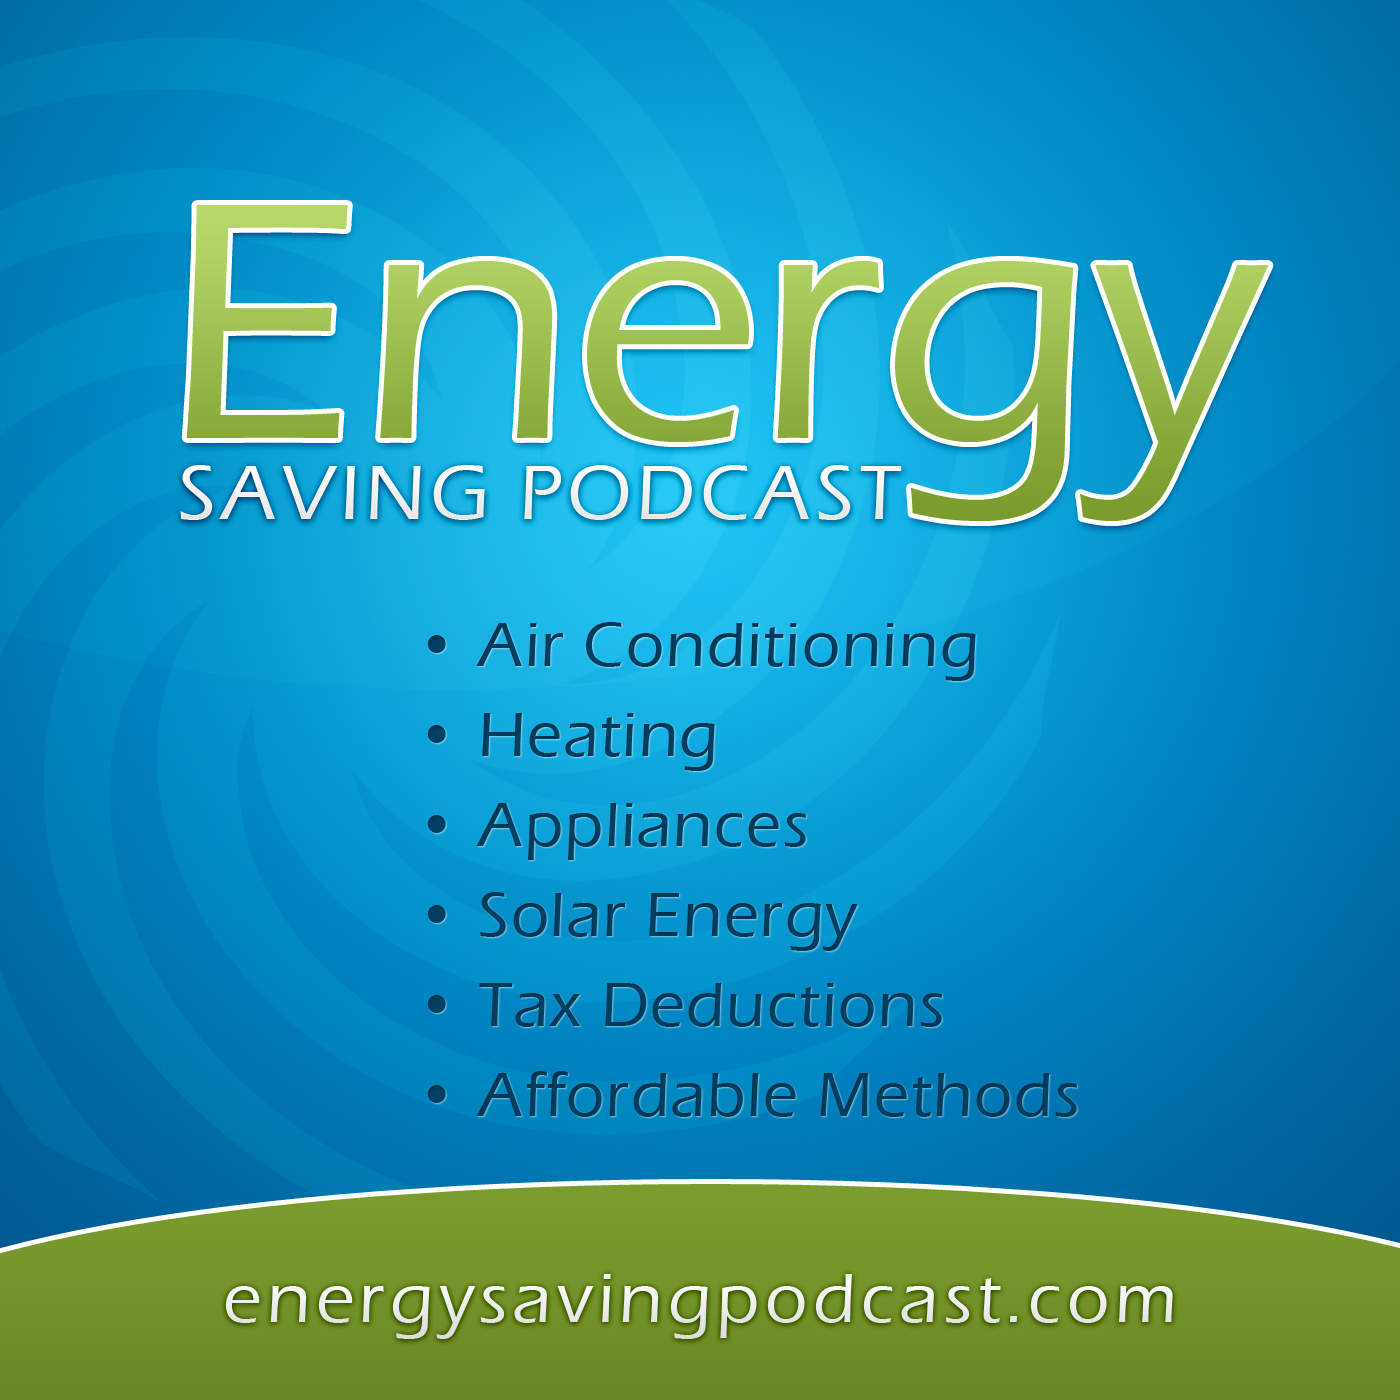 Energy Saving Podcast